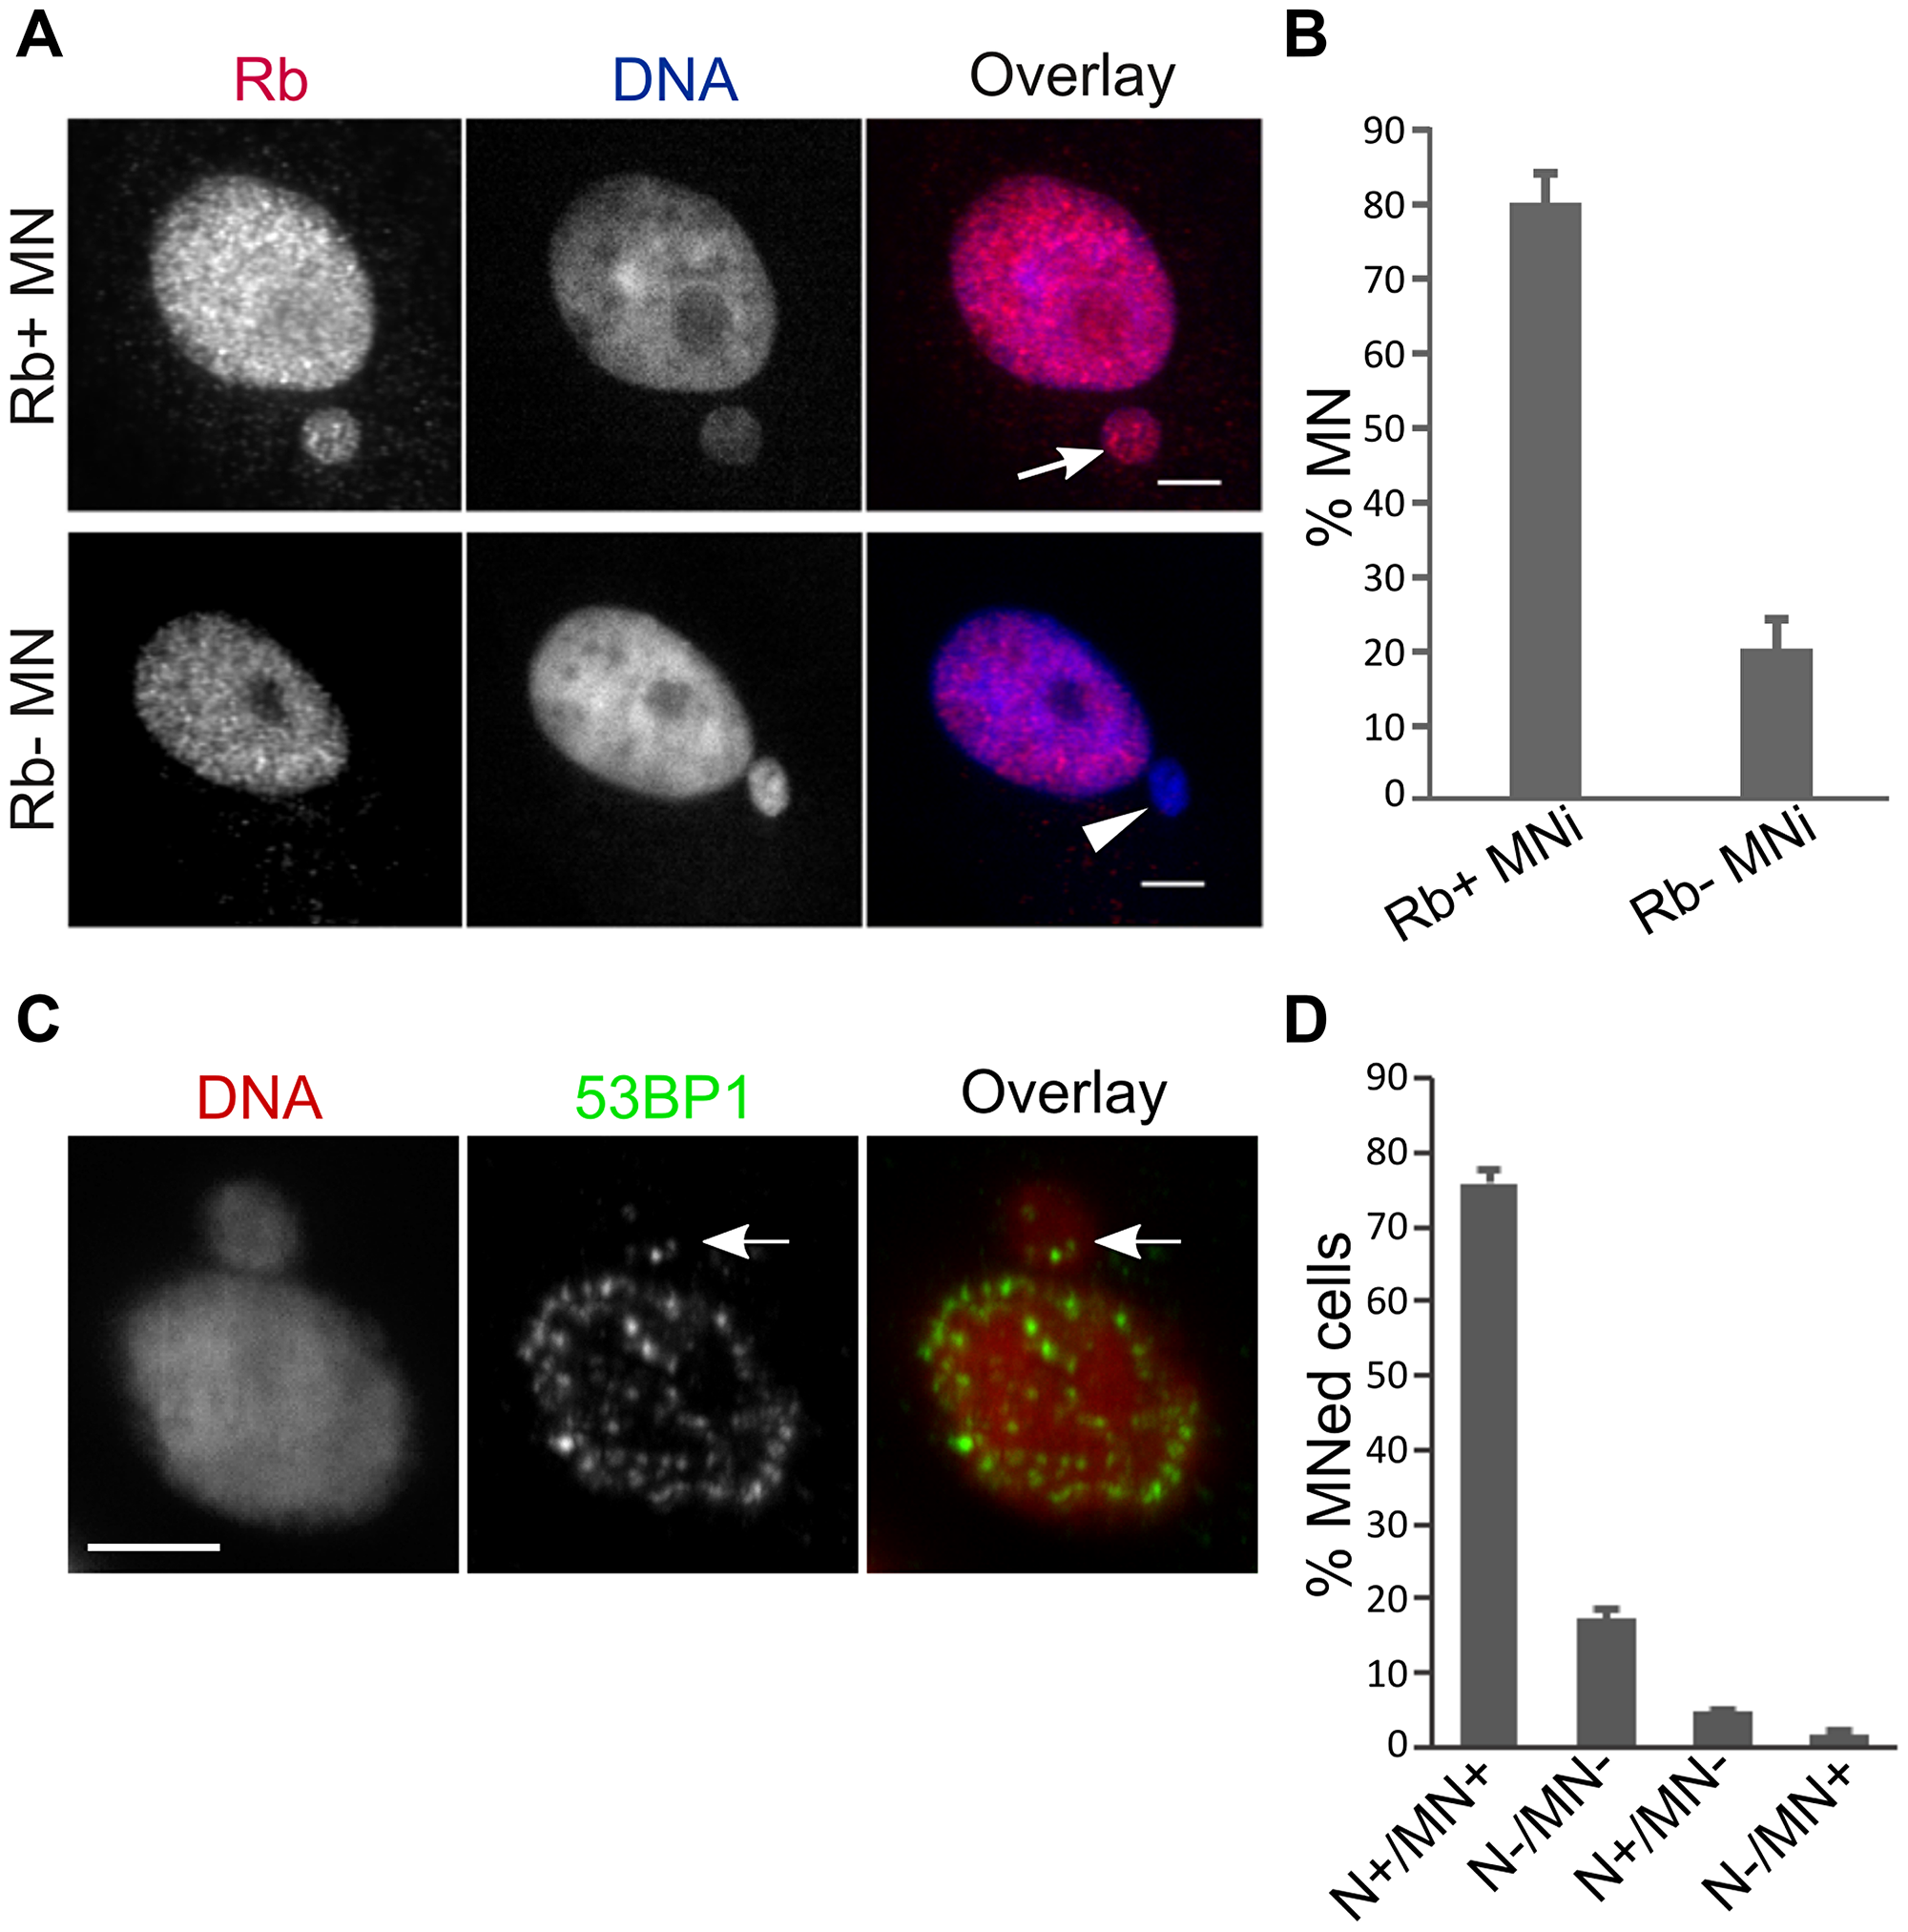 PtK1 cell MNi do not experience rupturing of the nuclear membrane and can recruit DNA damage signaling proteins.